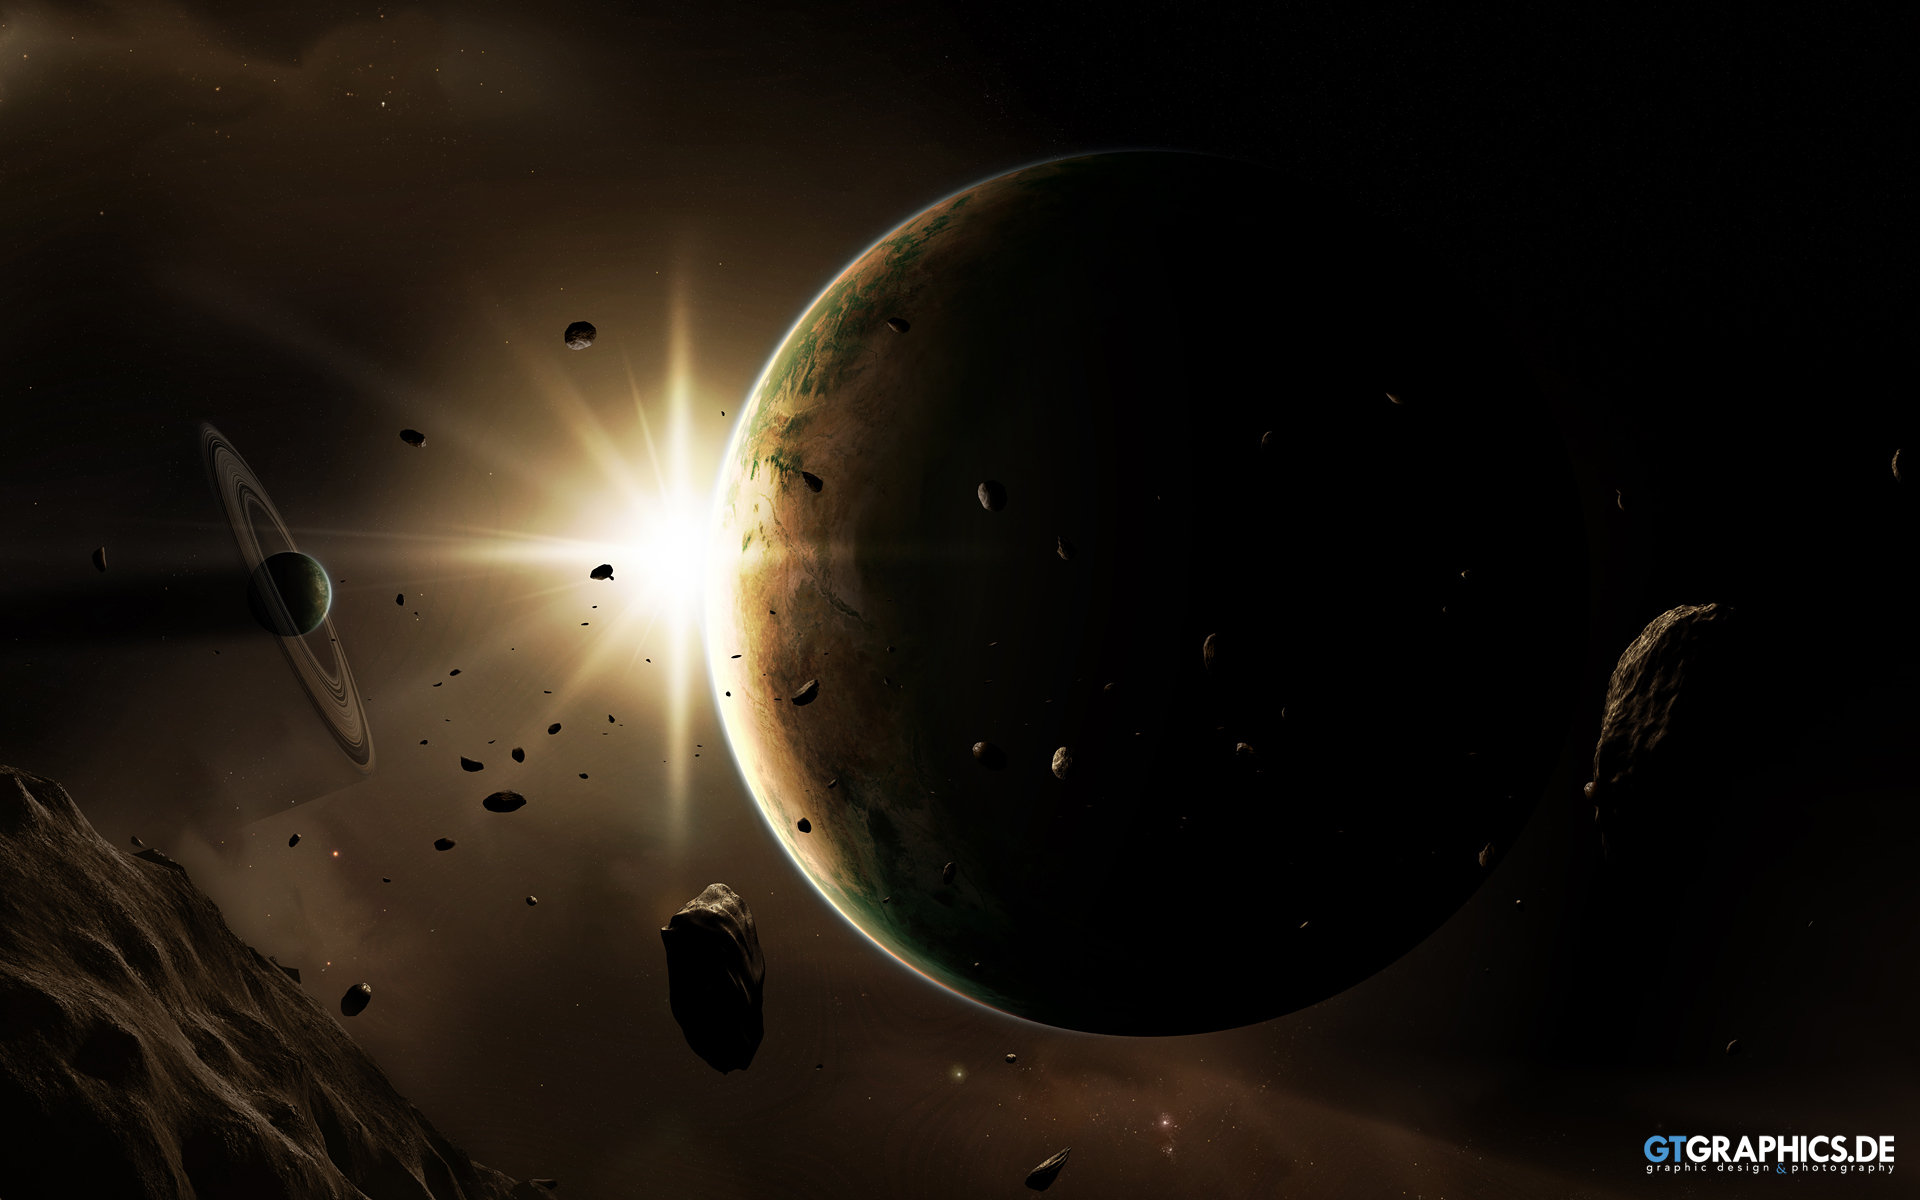 Astronomers poring through data gathered during the Kepler space telescopes current extended mission known as K2 have spotted 95 new alien planets